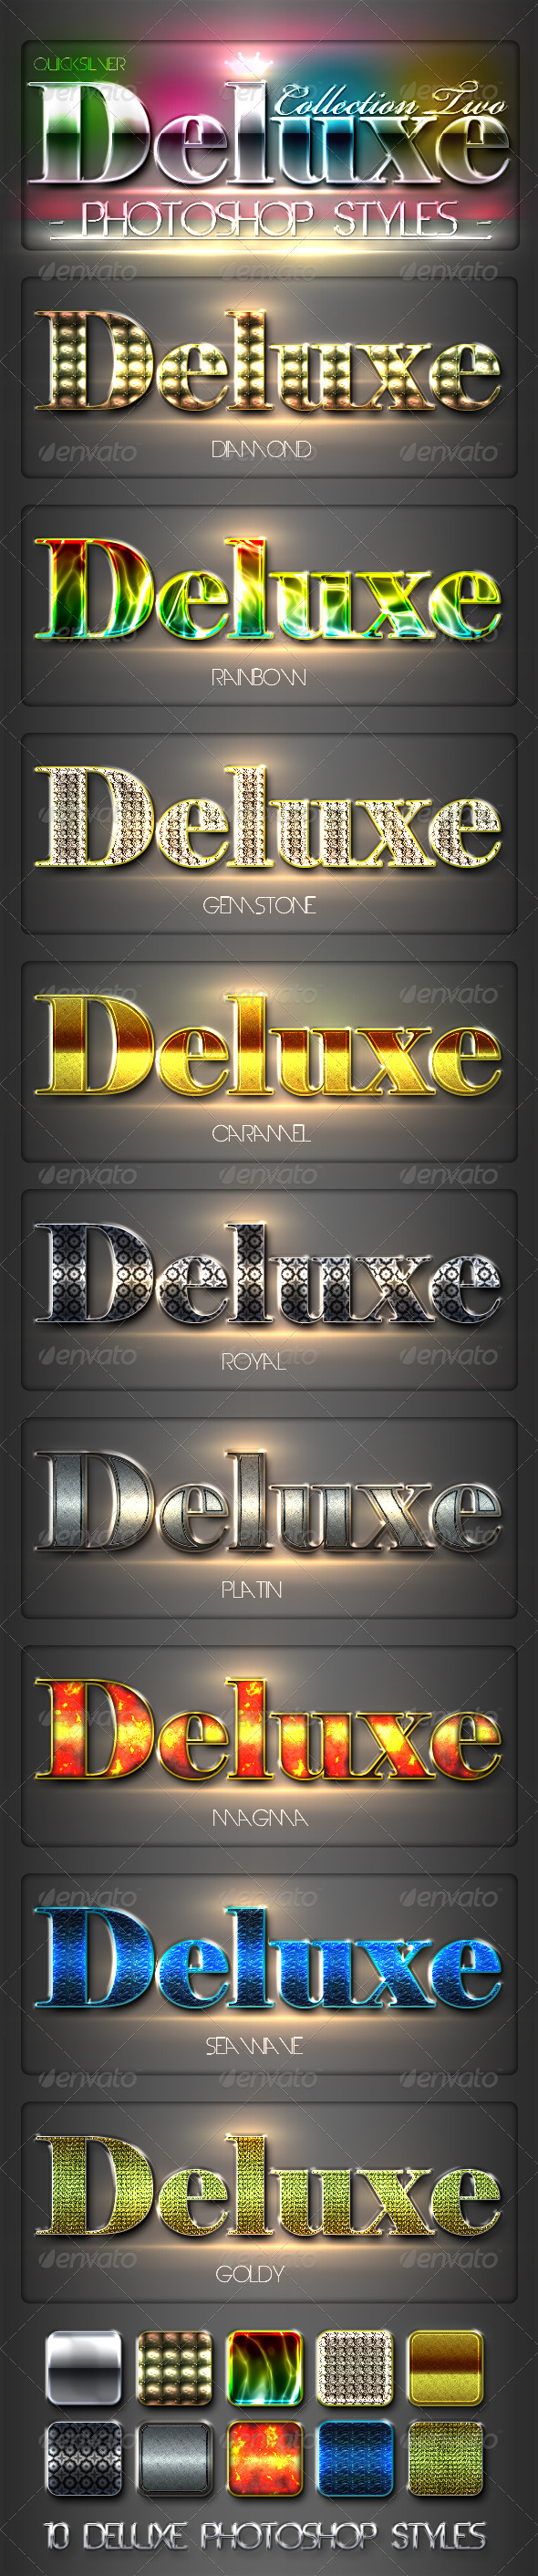 GraphicRiver 10 DeLuxe Photoshop Layer Styles Collection 2 1965359